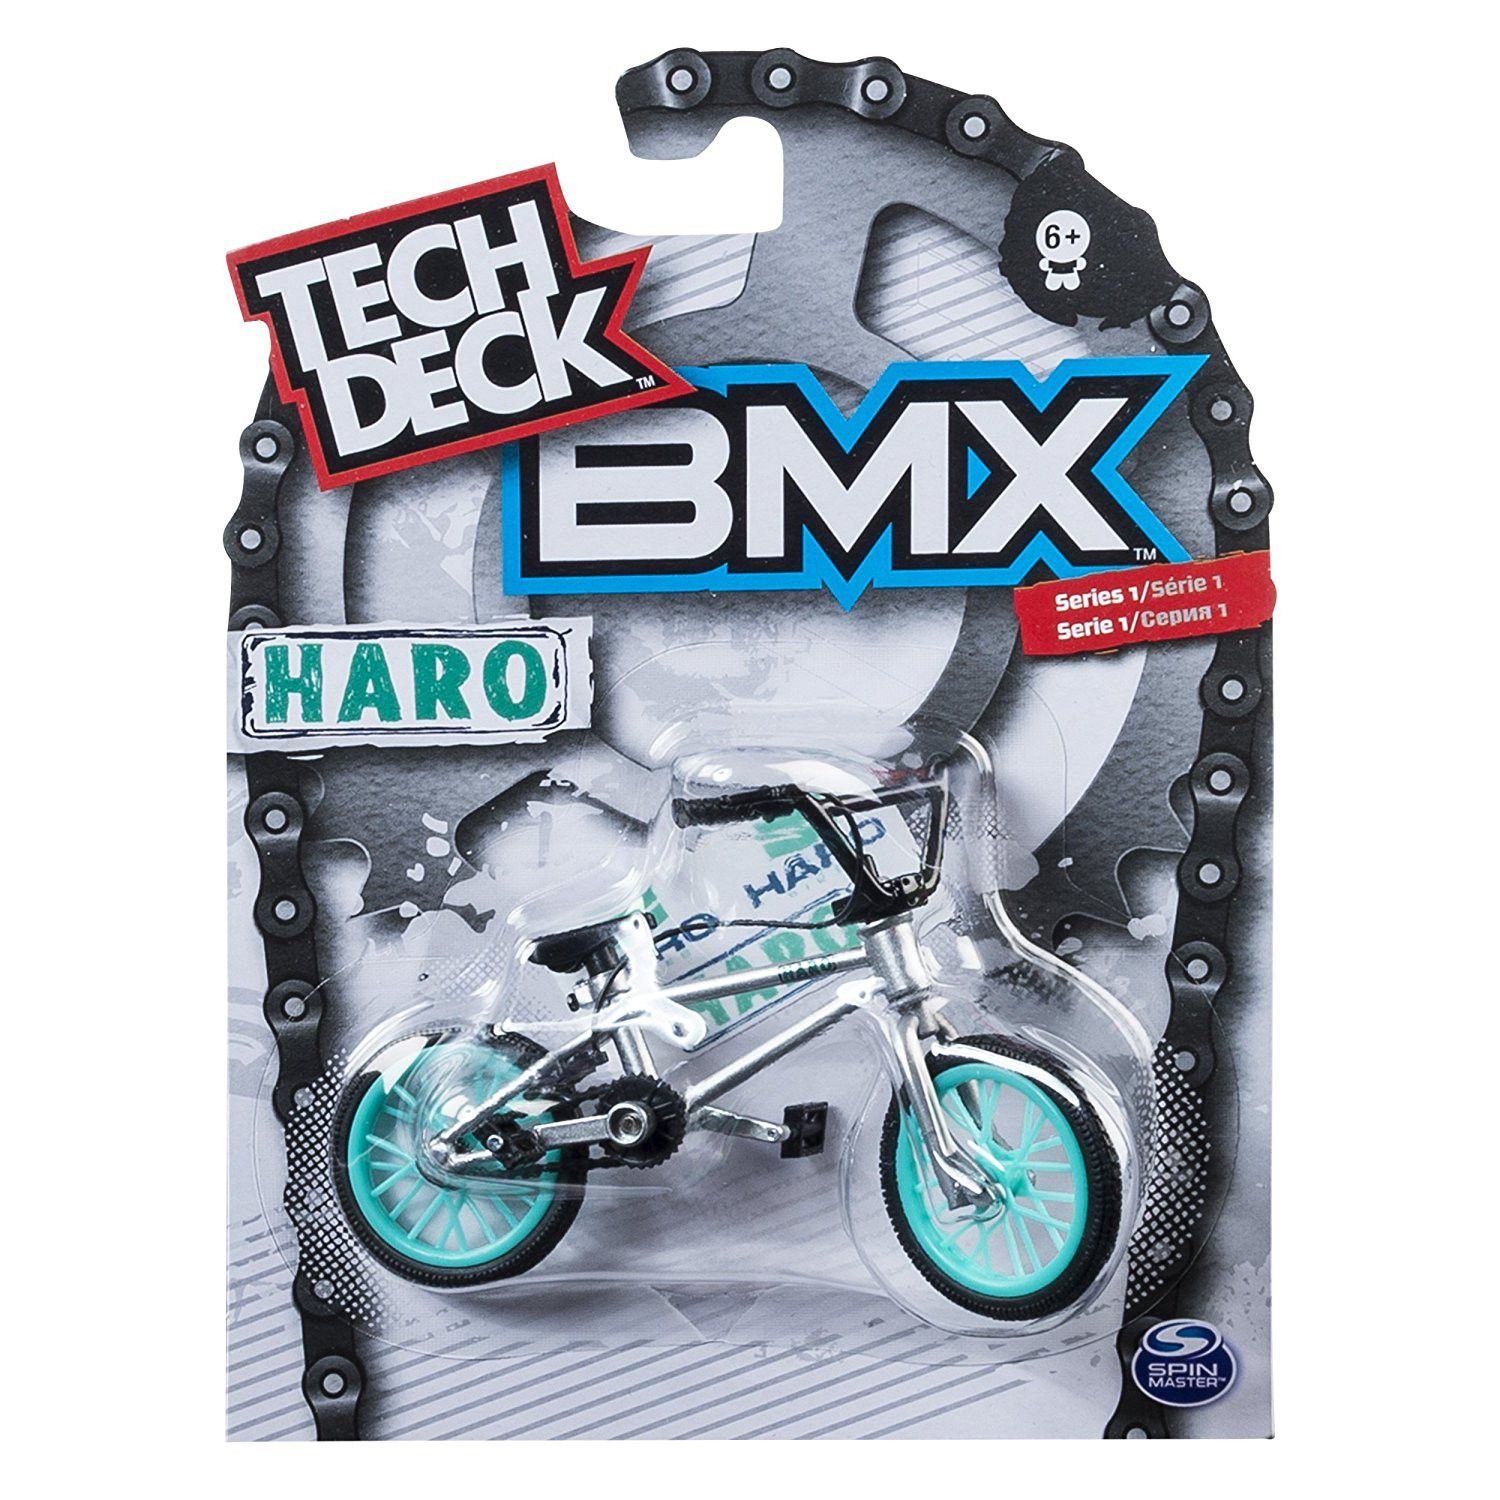 Brand new Tech Deck BMX Finger Bike Haro Grey